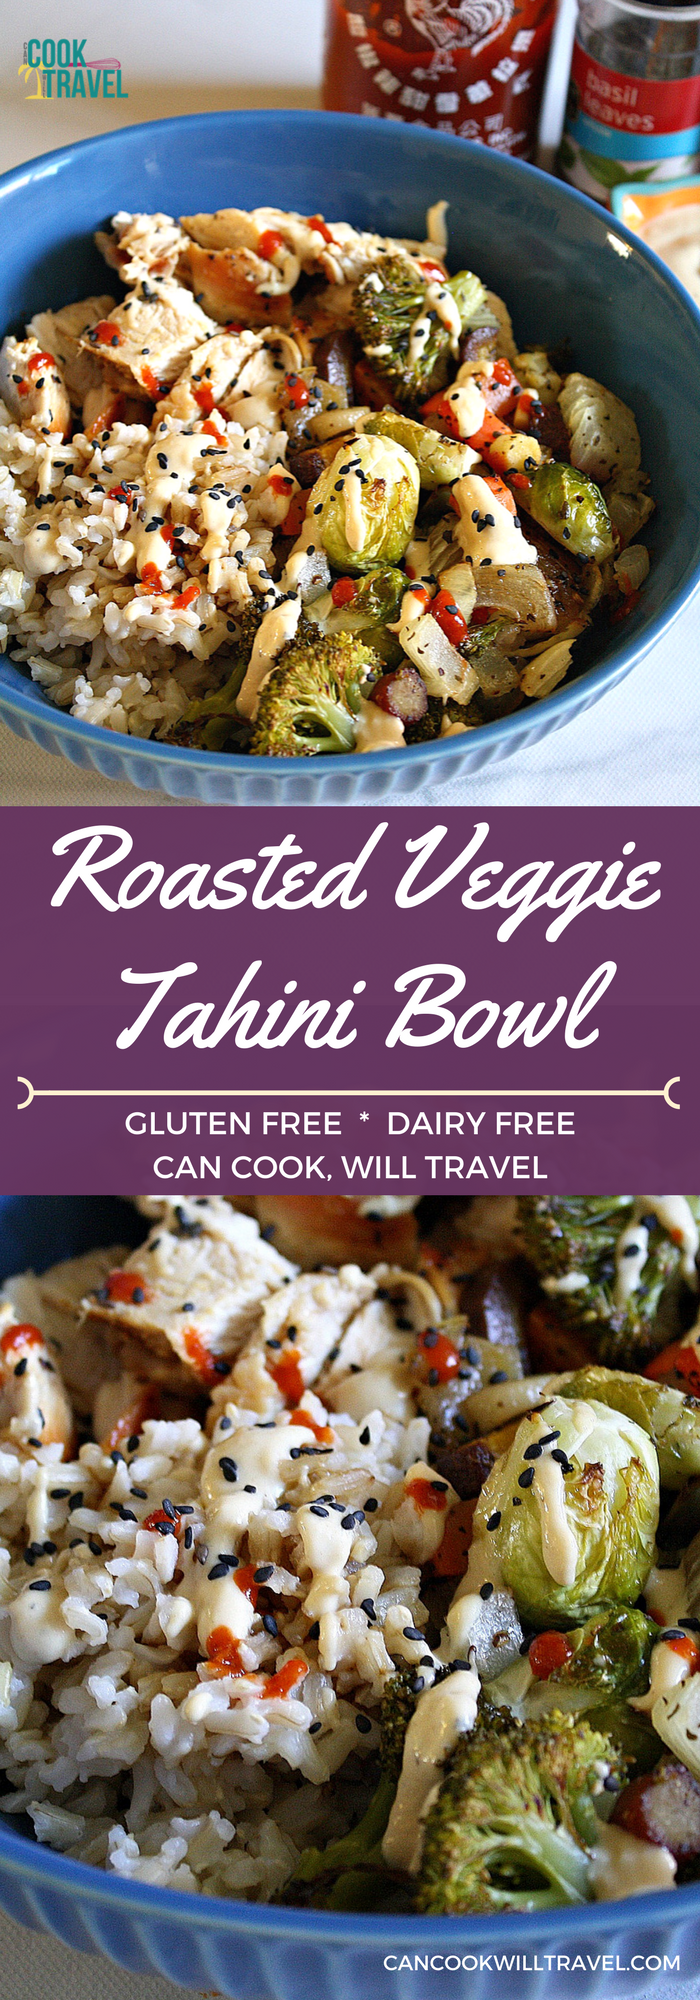 Roasted Veggie Tahini Bowl_Collage1